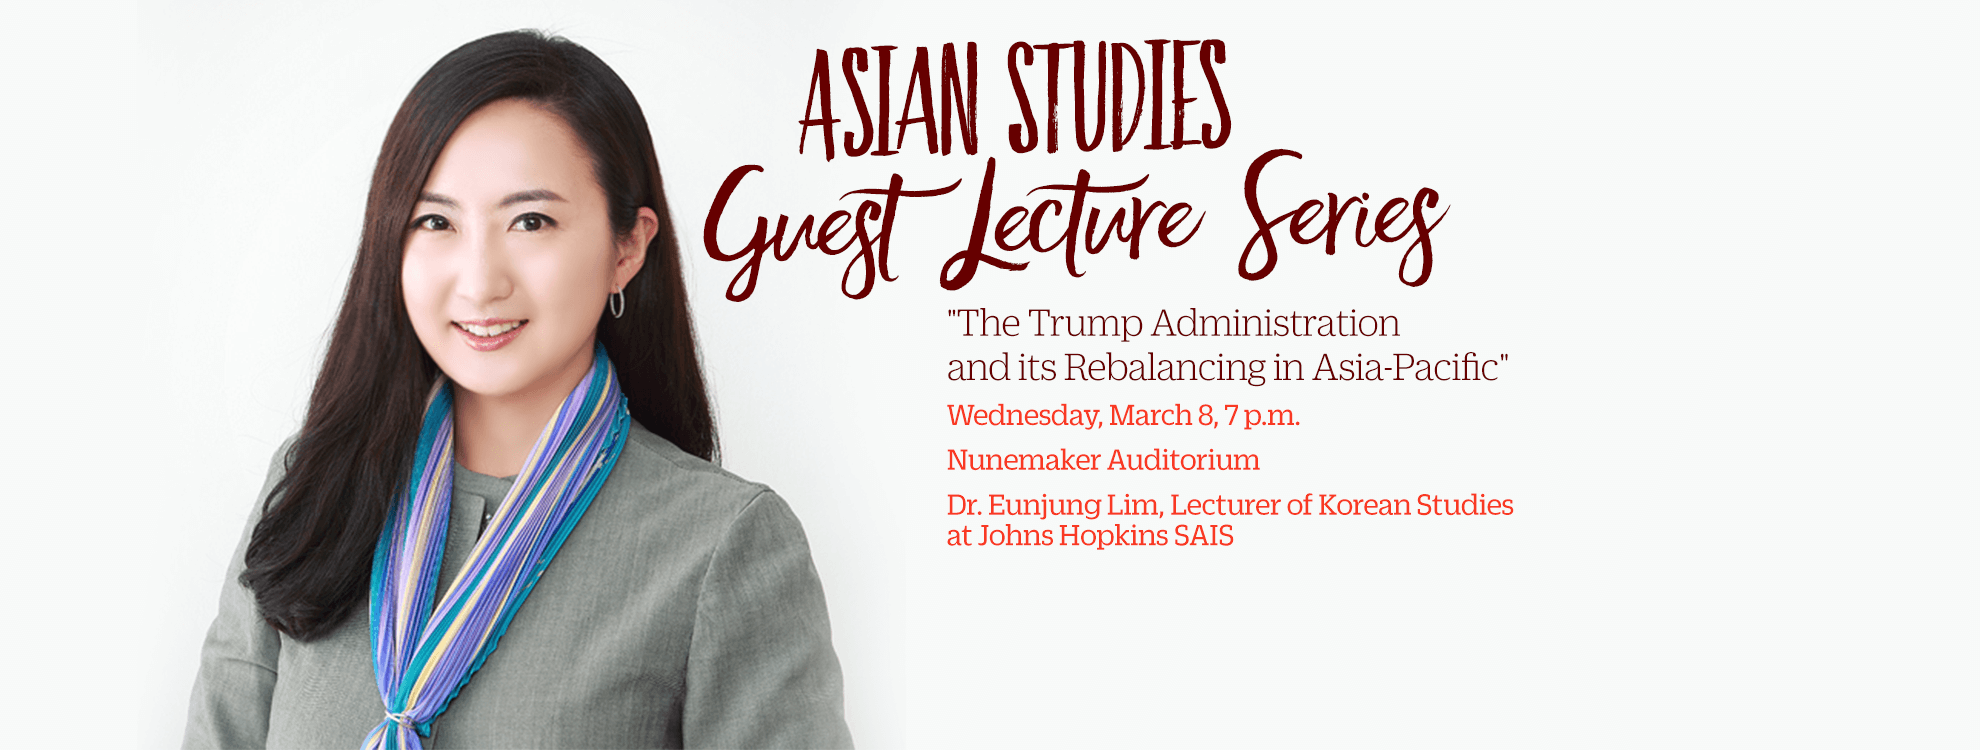 Asian Studies Guest Lecture Series - Loyola University New Orleans